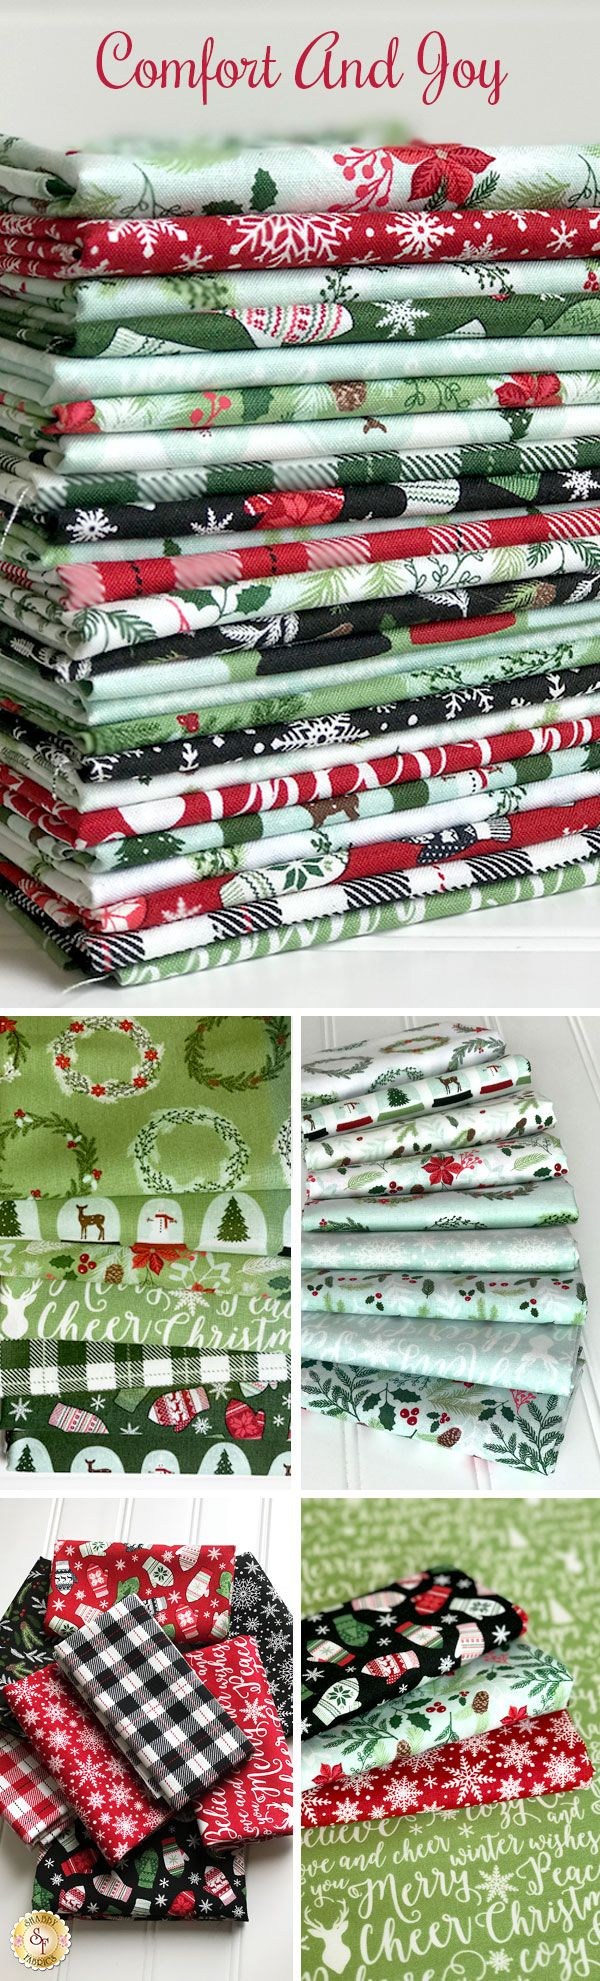 Comfort And Joy by Dani Mogstad for Riley Blake Designs is a beautiful Christmas collection available at Shabby Fabrics!